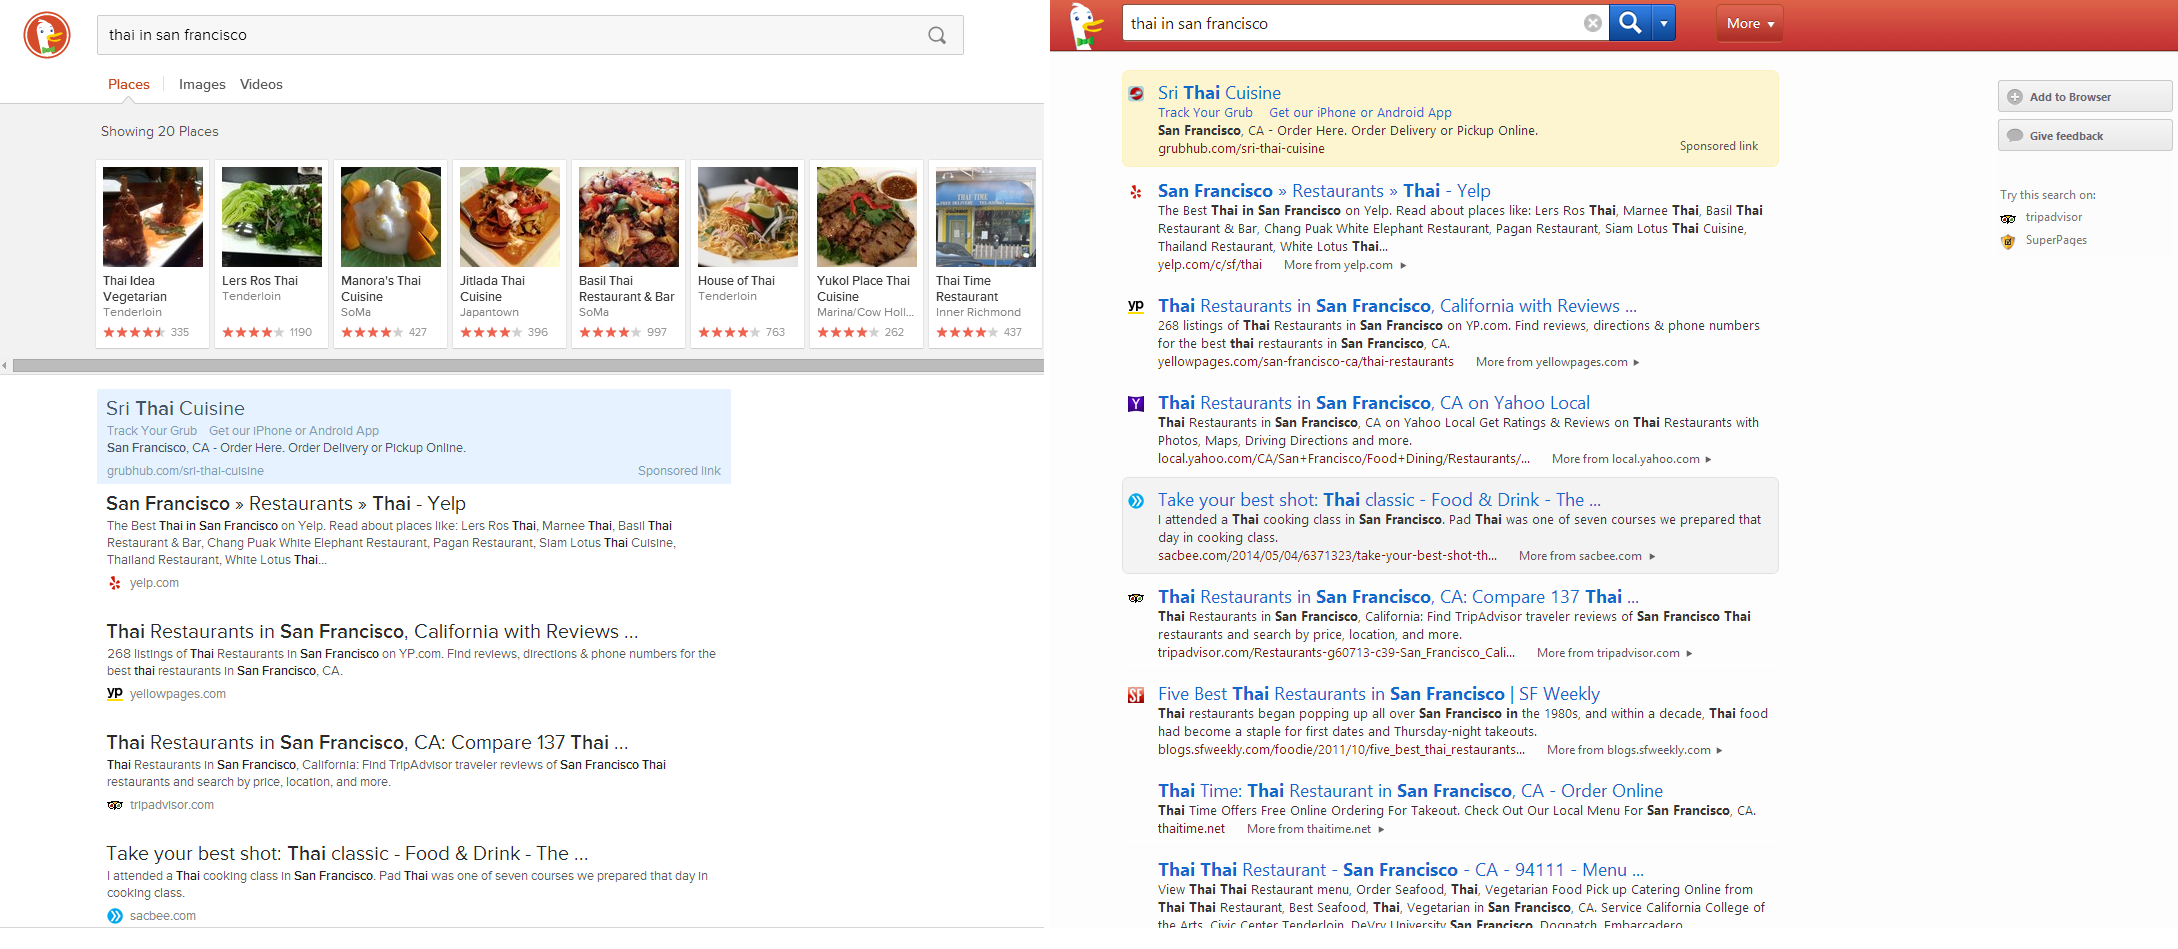 DuckDuckGo, The Search Engine That Doesn't Track You